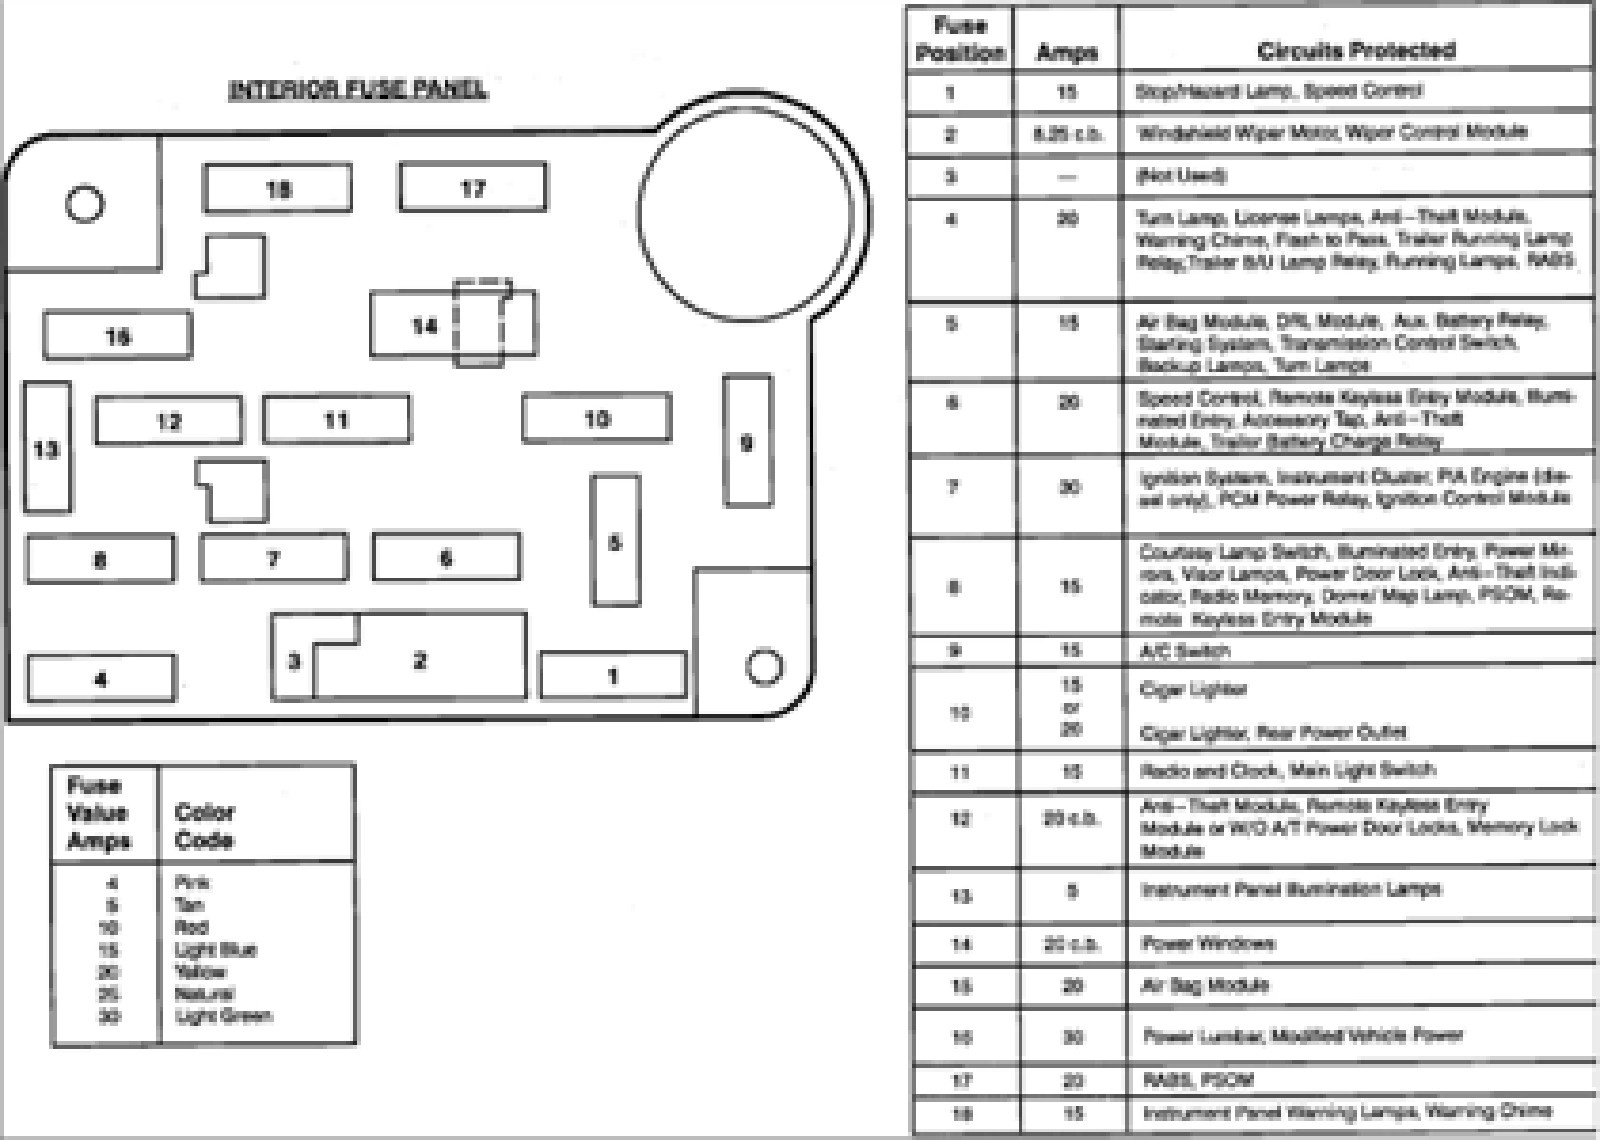 2002 Ford E350 Fuse Box Diagram Free Download List Of Schematic 2006 Escape Manual E150 Van Simple Wiring Rh David Huggett Co Uk